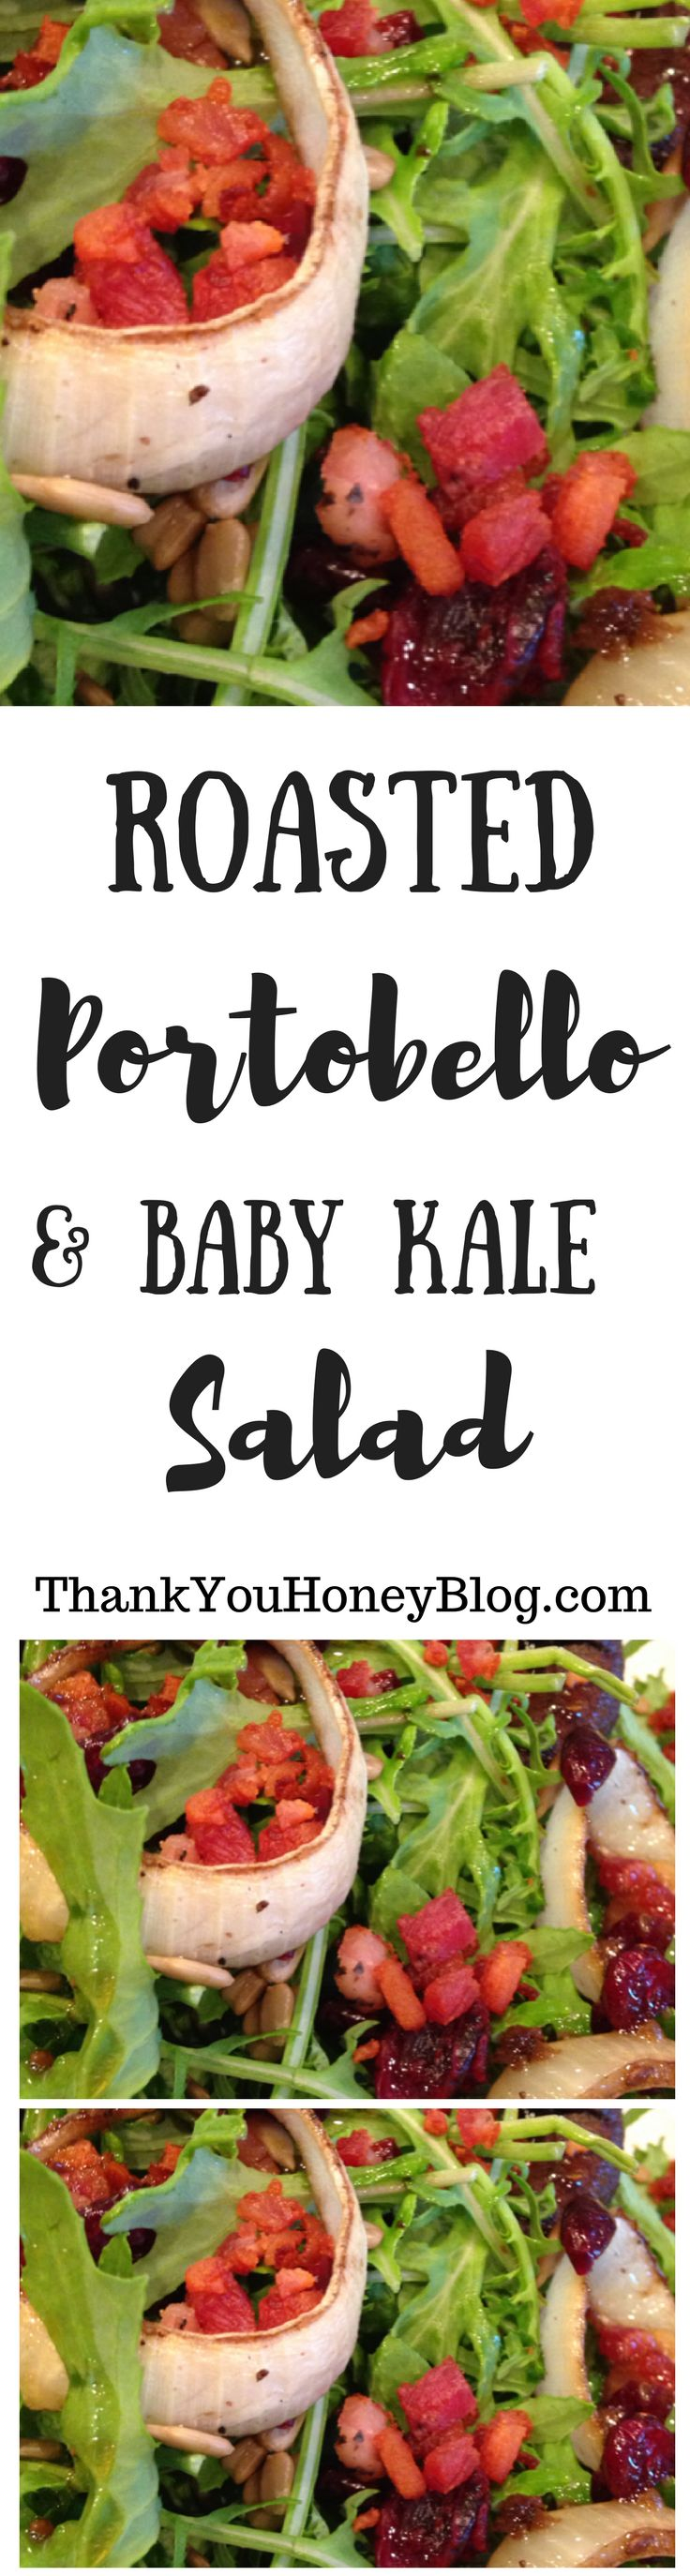 Roasted Portobello and Baby Kale Salad Recipe Easy & Delicious. Baby Kale, Dinner, Recipe, Gluten Free, Healthy, Paleo, Whole 30, Click through & PIN IT! Follow Us on Pinterest + Subscribe to ThankYouHoneyBlog{dot}com,